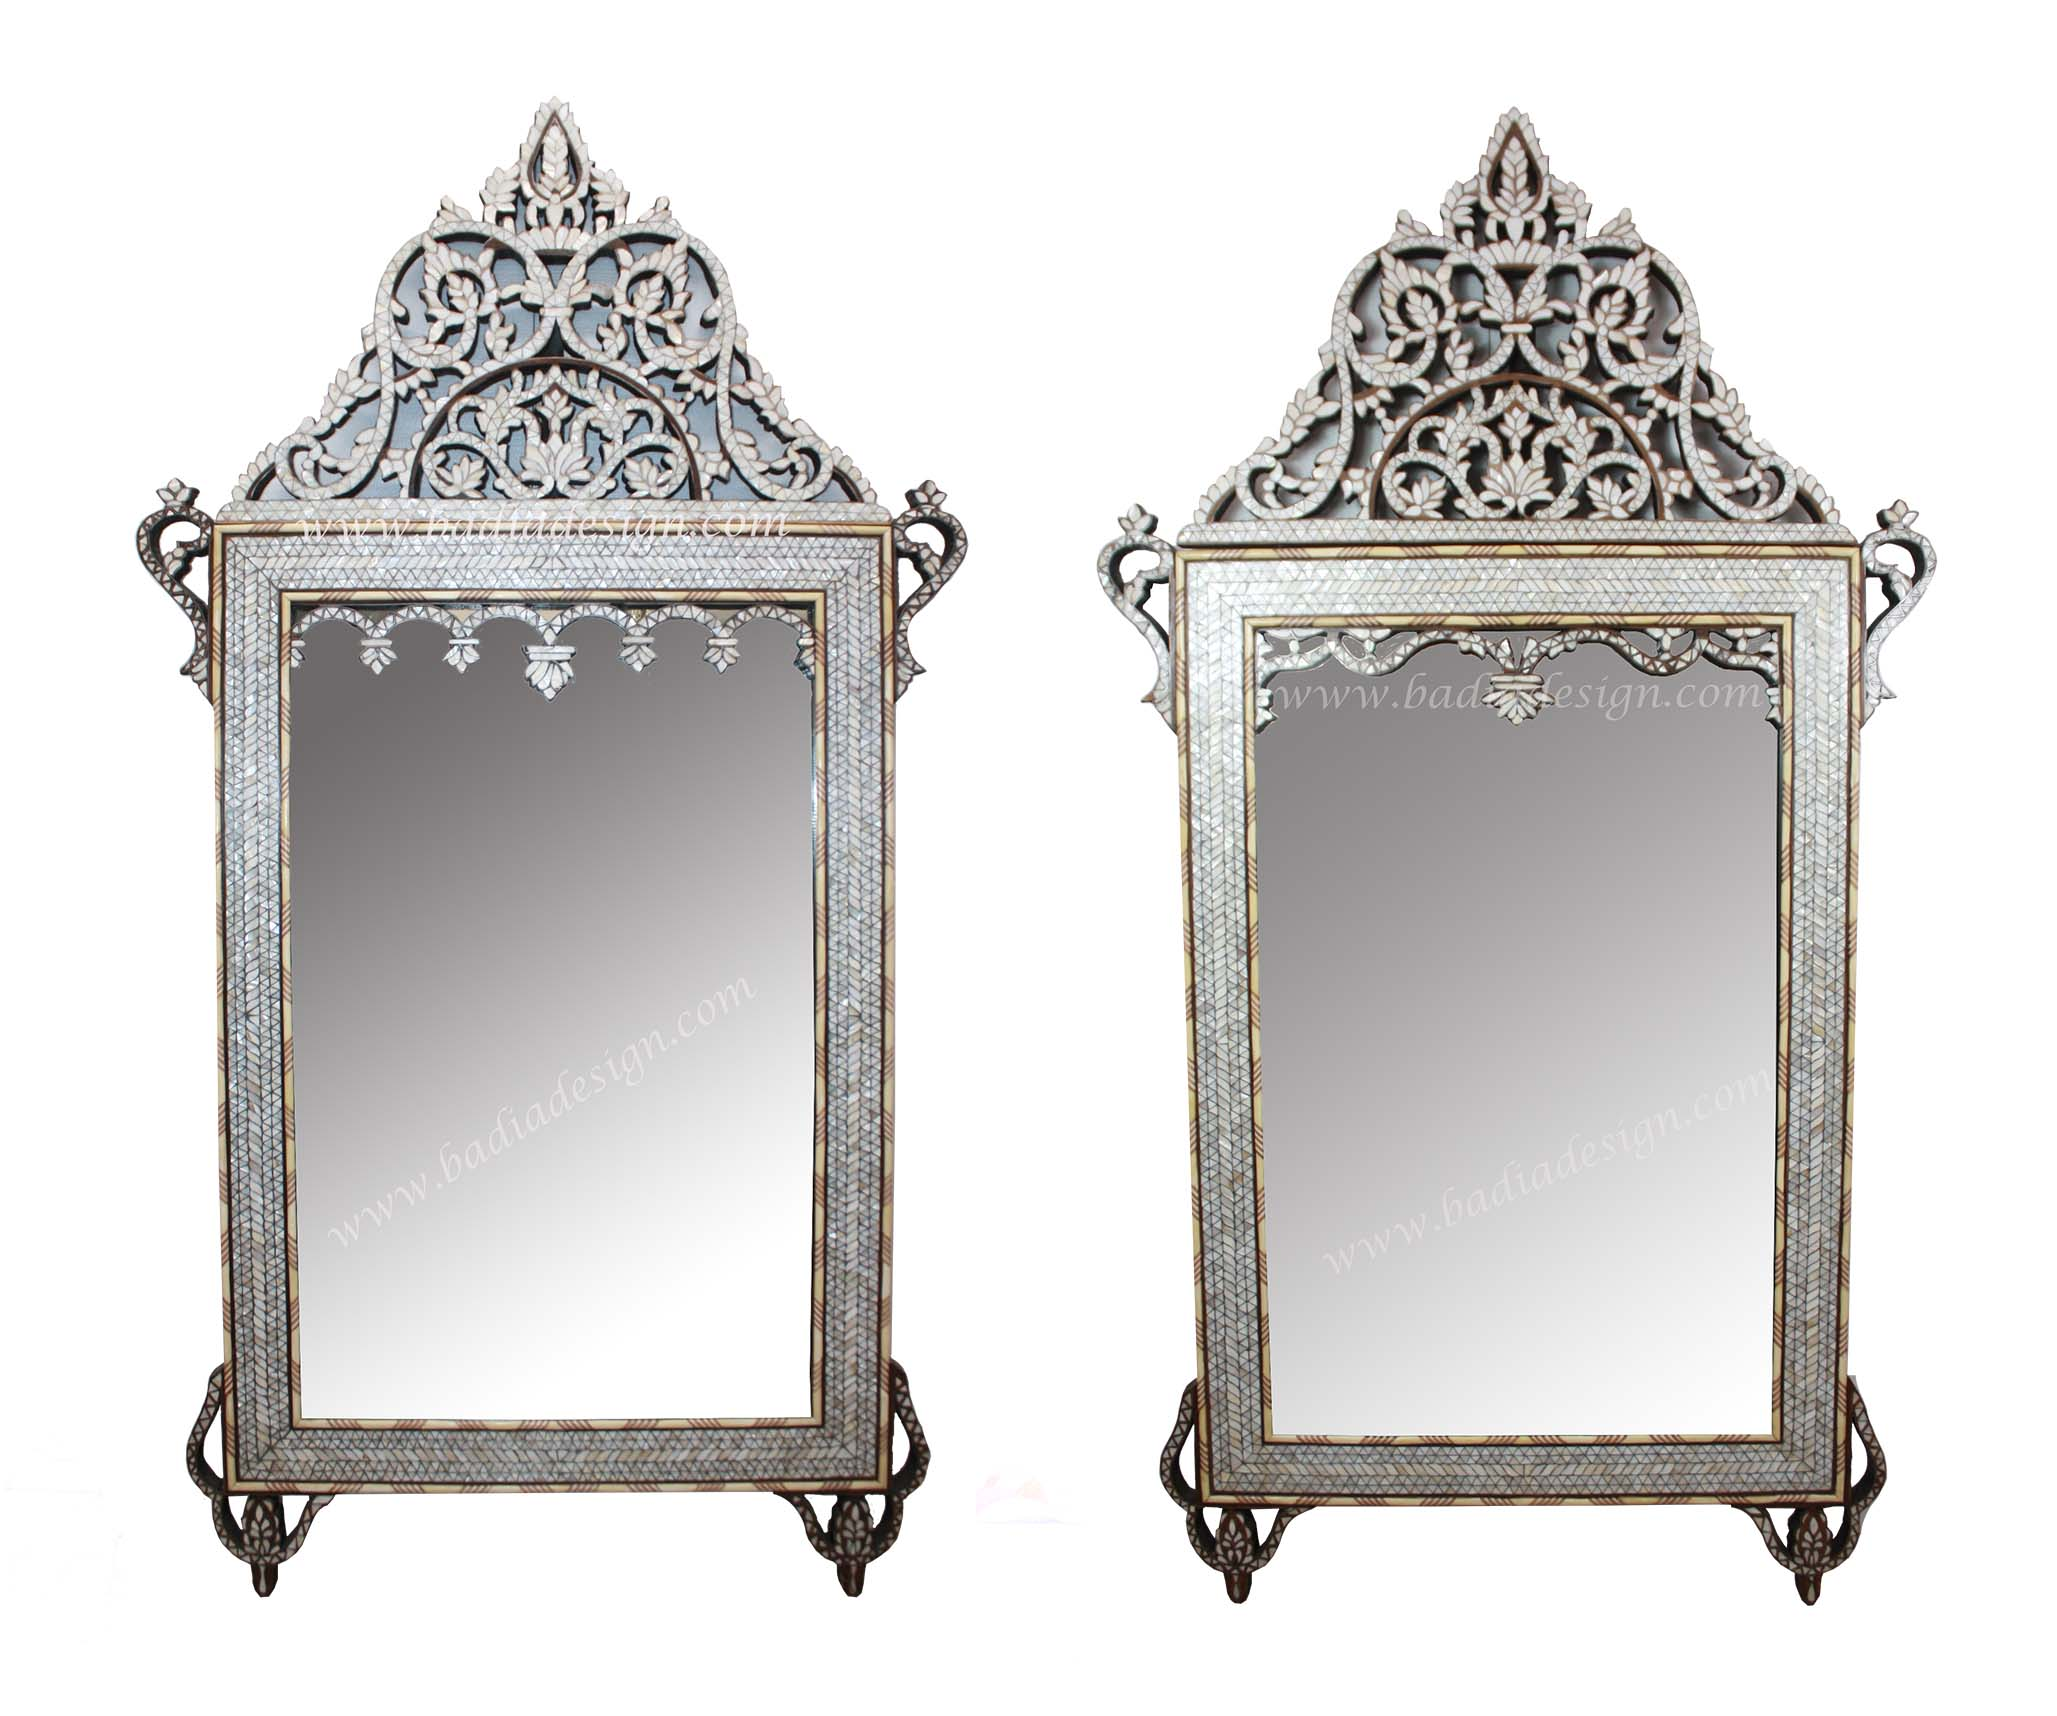 white-mother-of-pearl-mirror-m-mop024.jpg